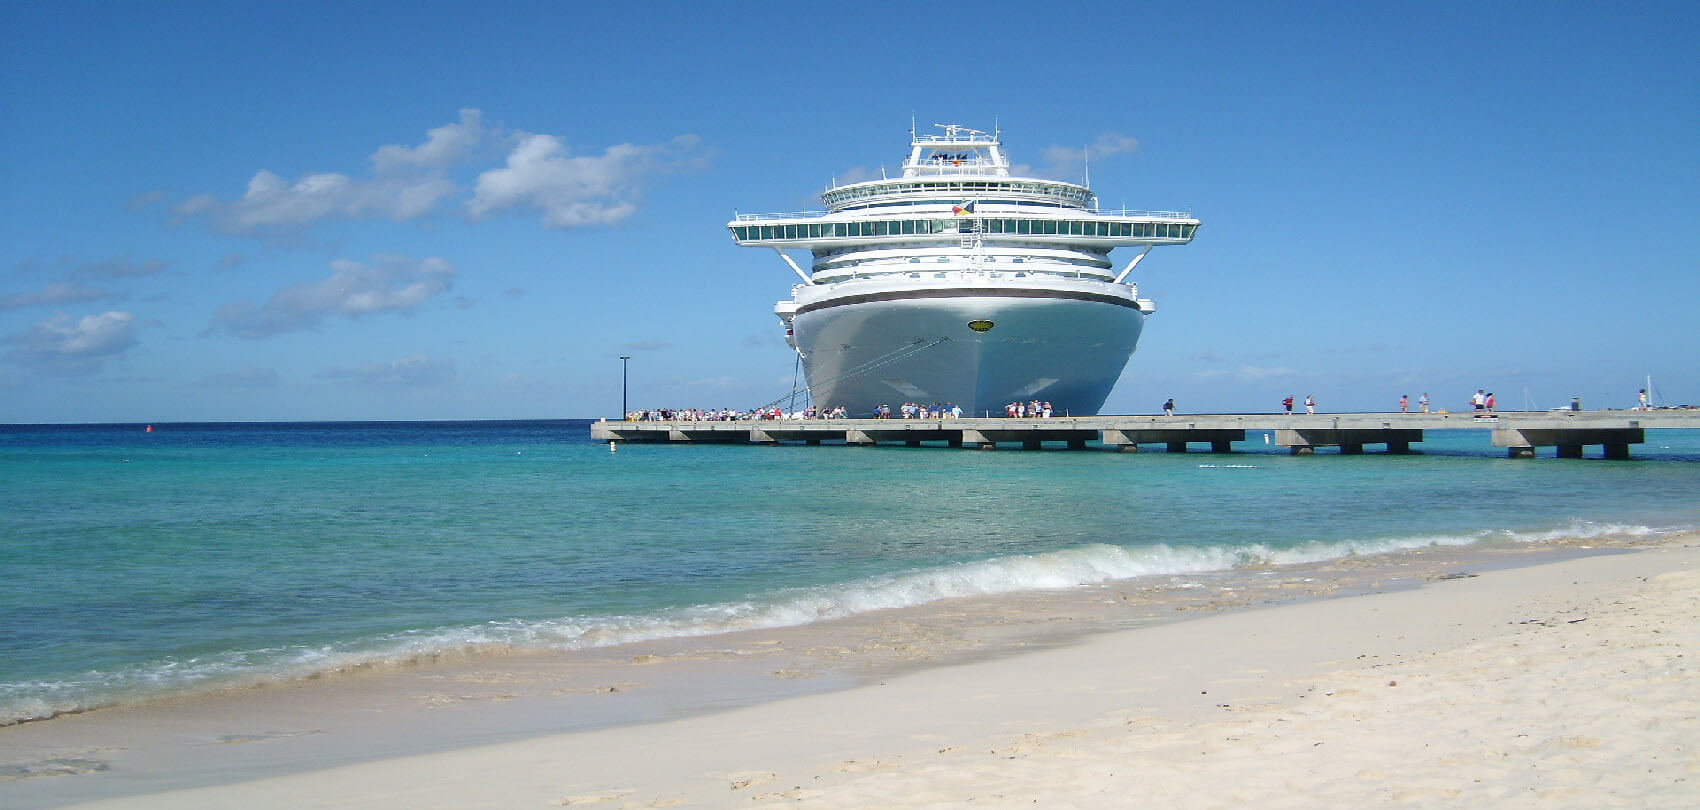 Cruise Ship, Caribbean